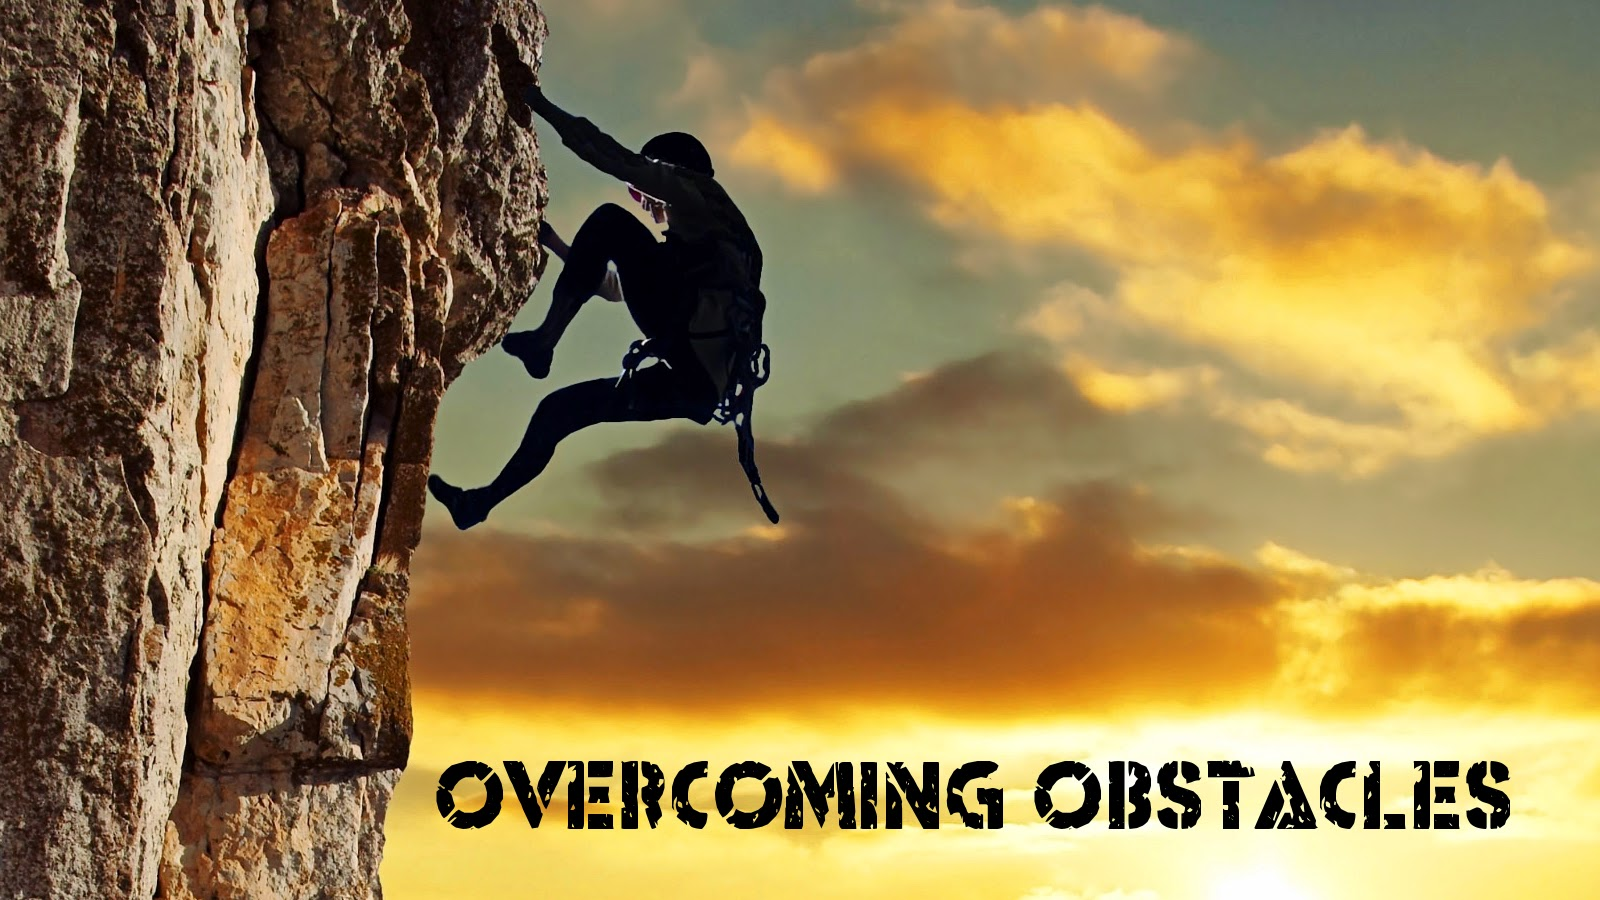 How To Overcome Obstacles And Jump Over The Hurdle